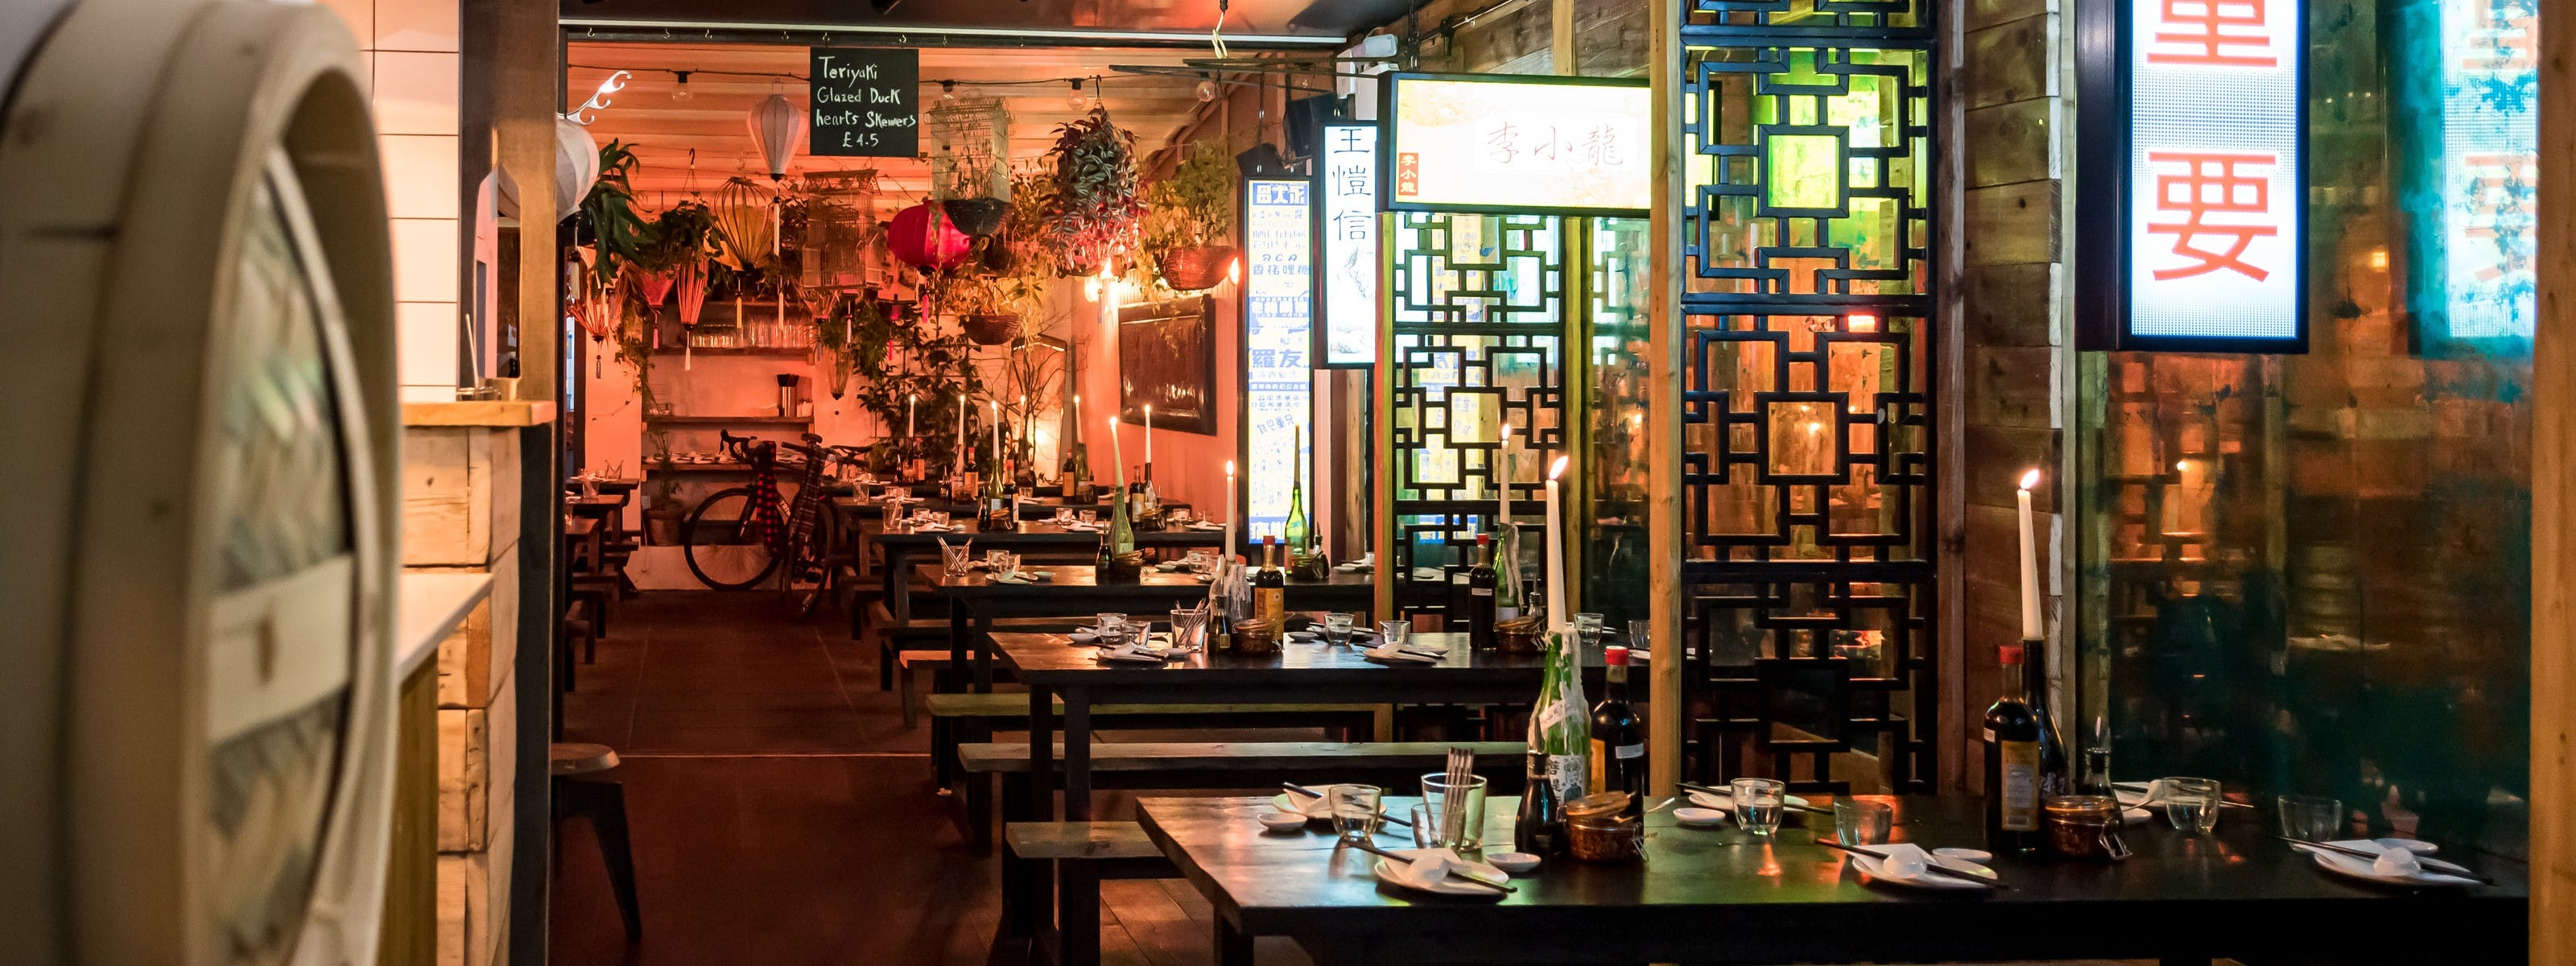 The Best London Restaurants For A Leaving Dinner (Even If They'll Be Back Next Month) - London - The Infatuation